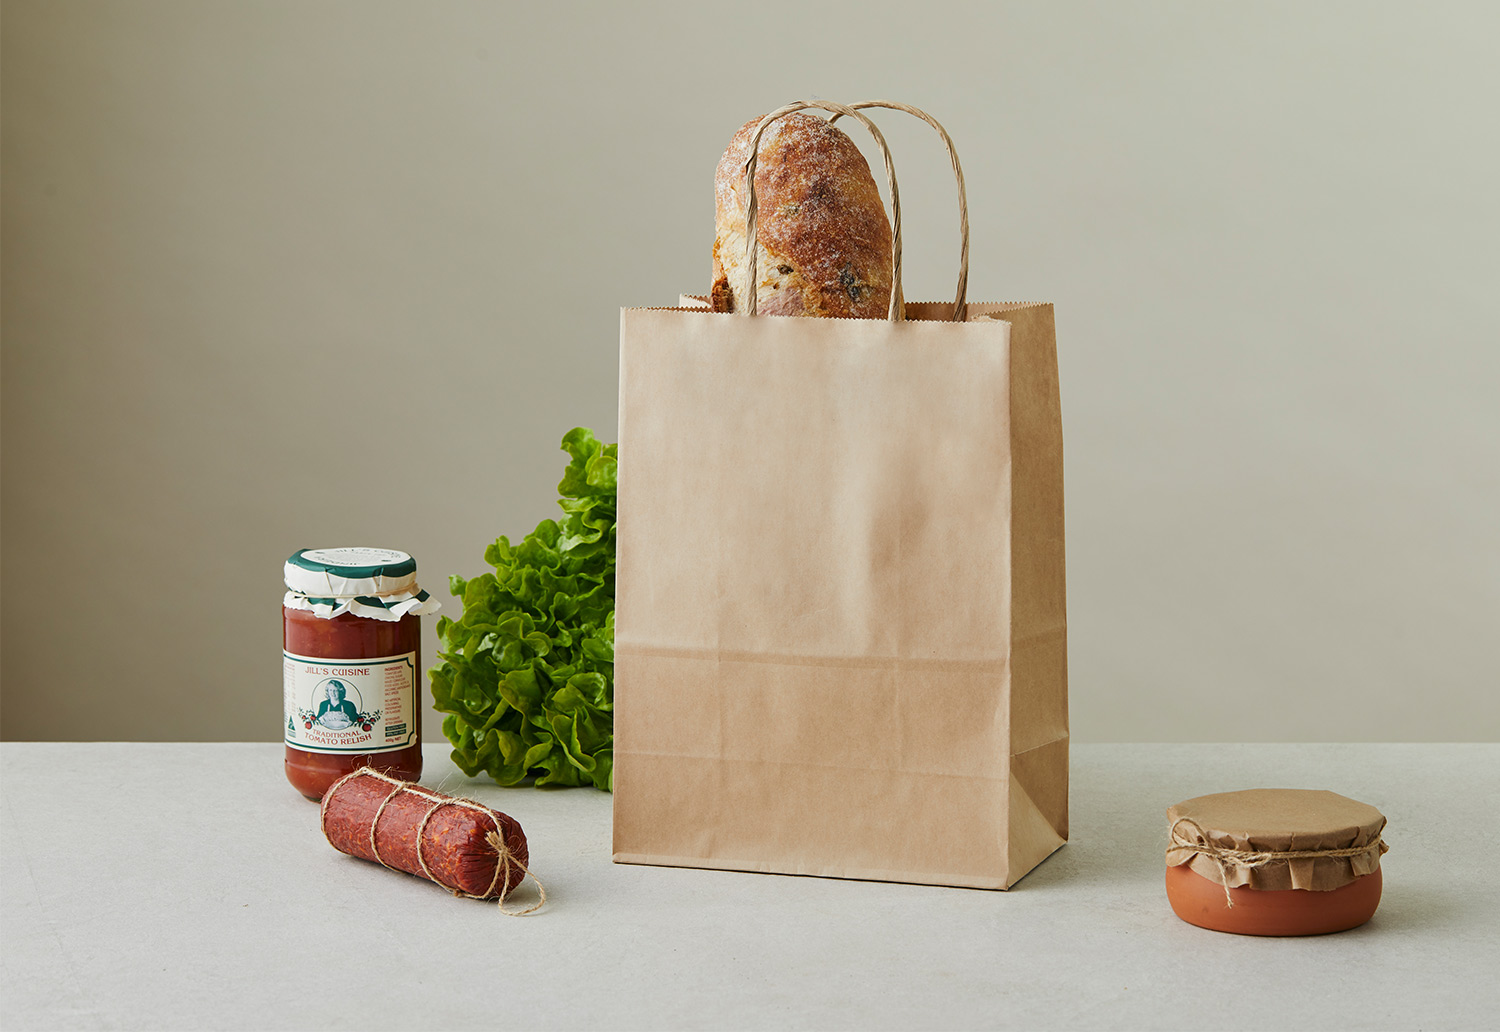 Image of sustainable brown paper bag from Detpak